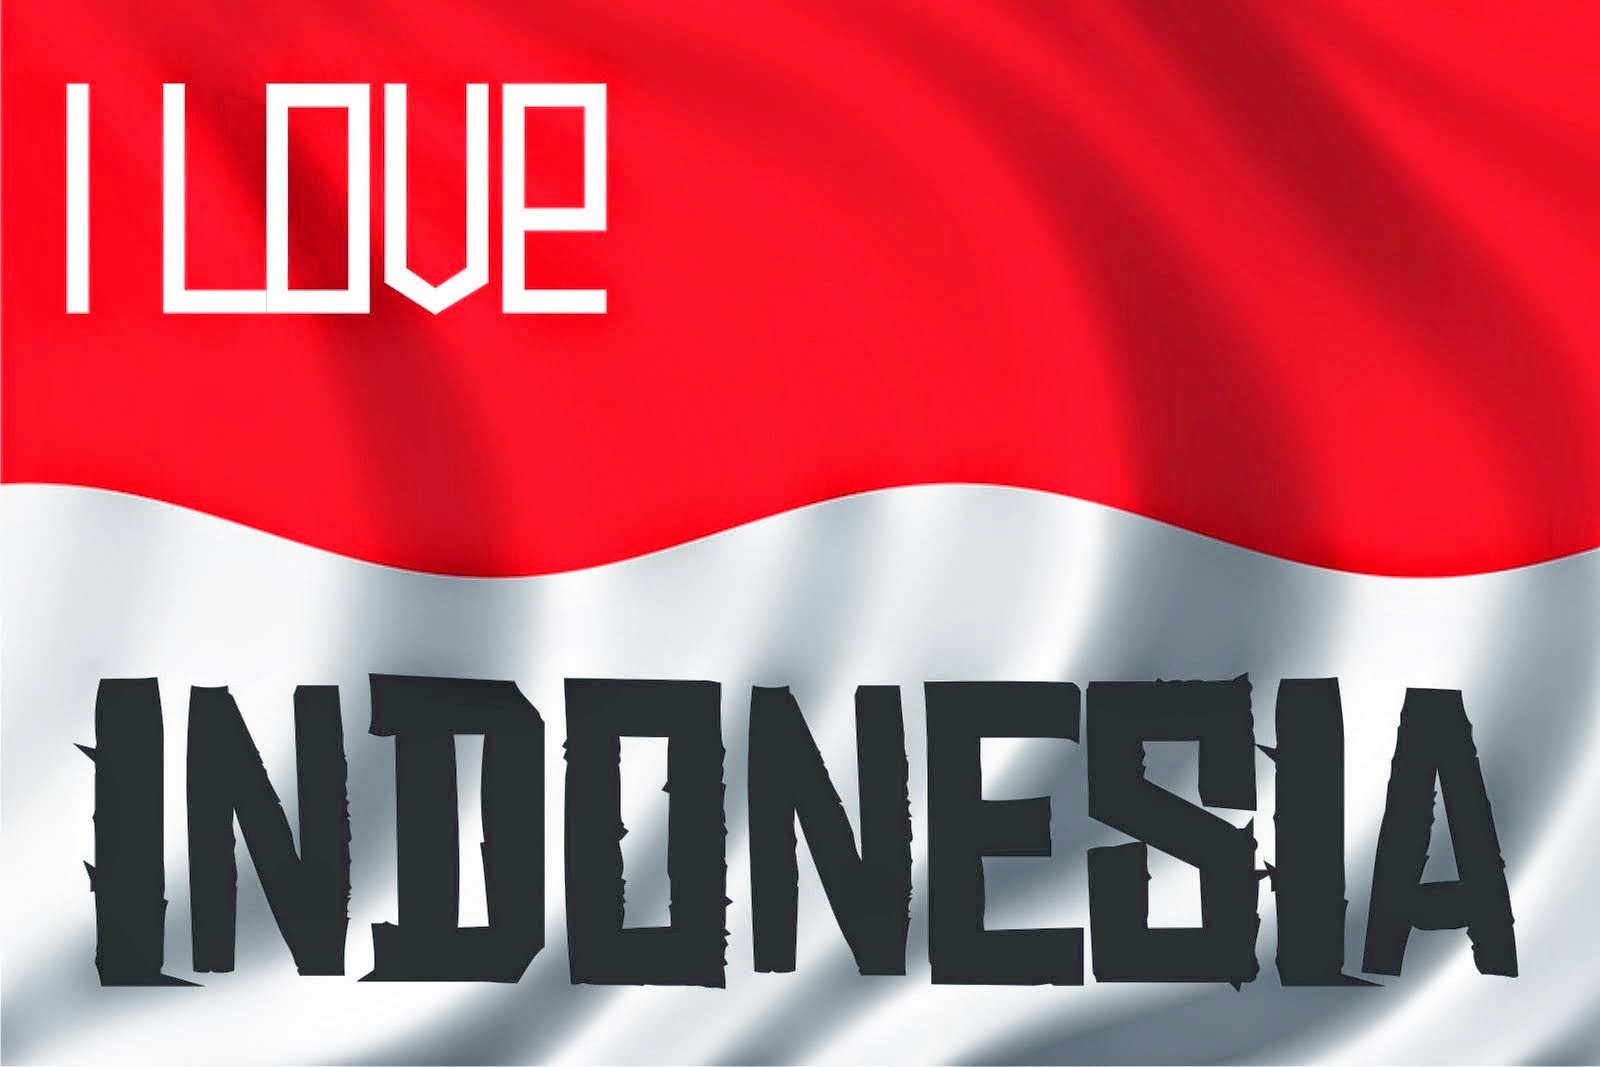 Share Ssh 14 Mei 2014 Server Indonesia [15 mei Update]